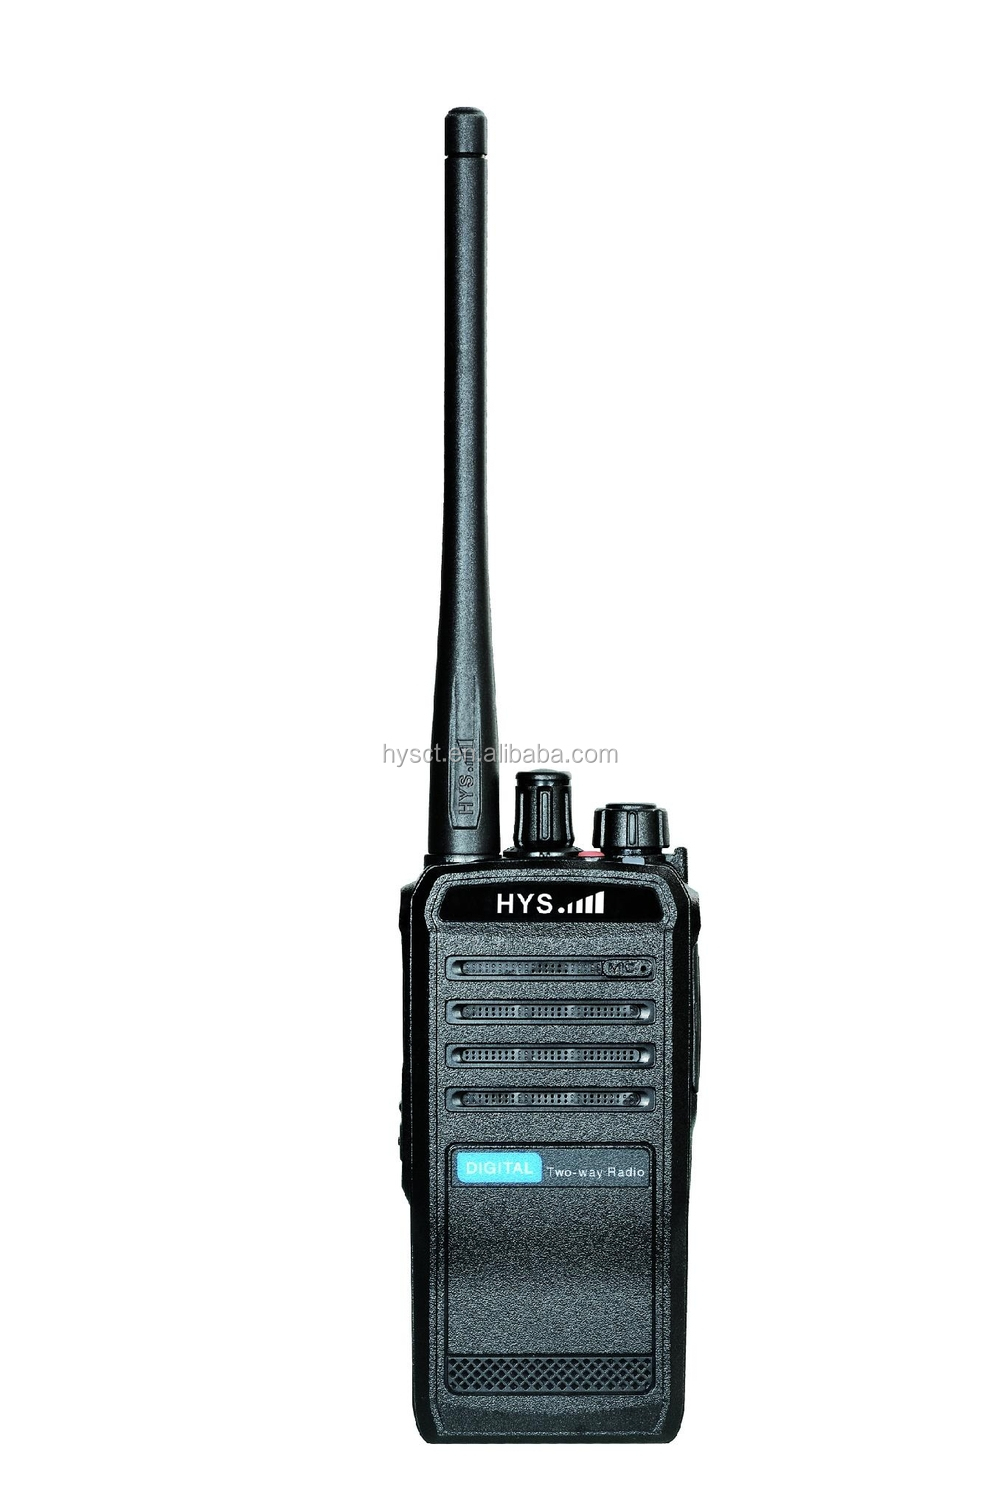 HYS TC-818DP 5W high power 136-174 MHz/ 400-470 MHz DPMR Digital moible radio